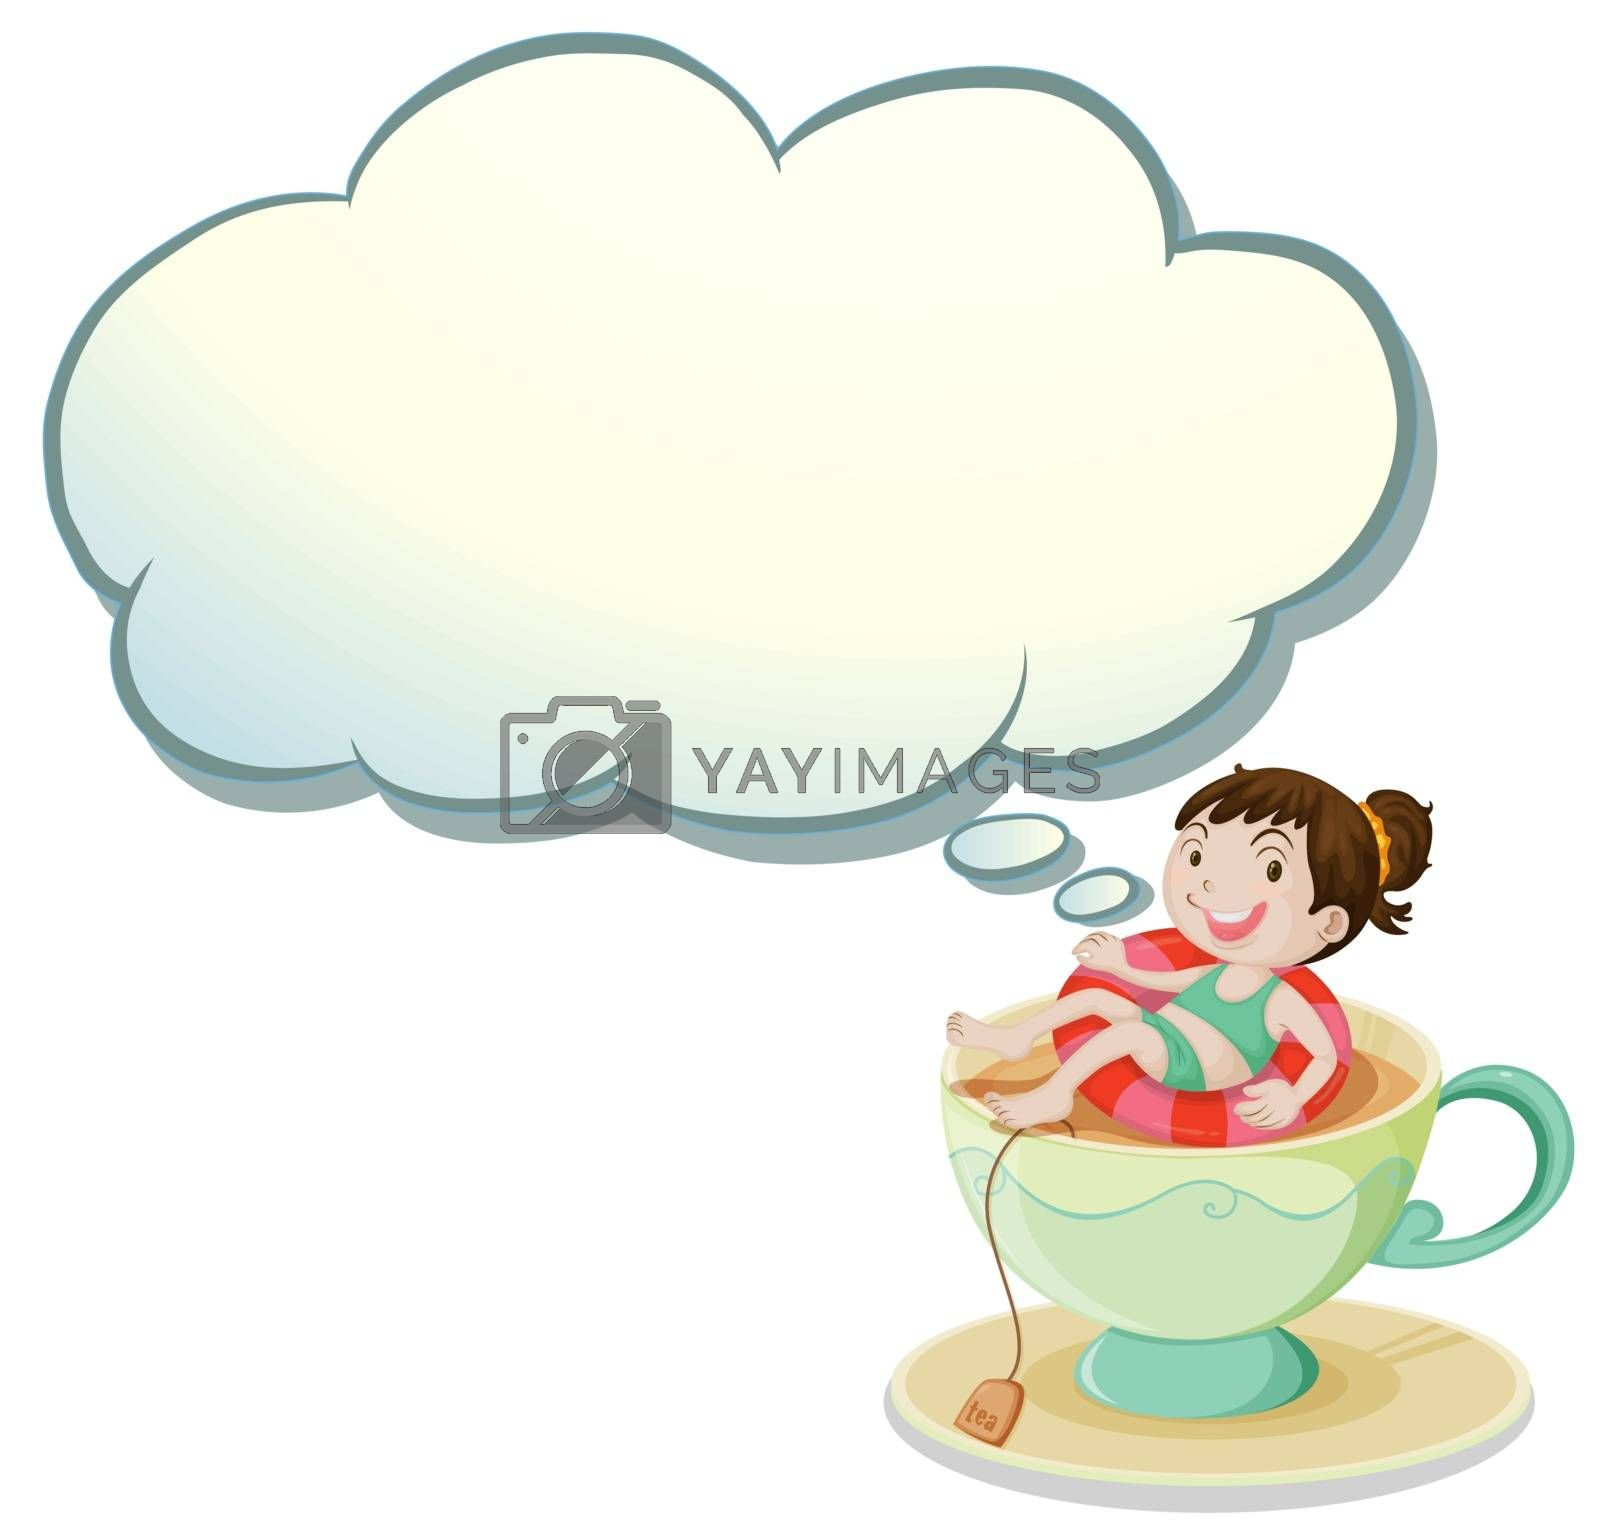 Royalty free image of A happy girl swimming above the cup with an empty cloud template by iimages